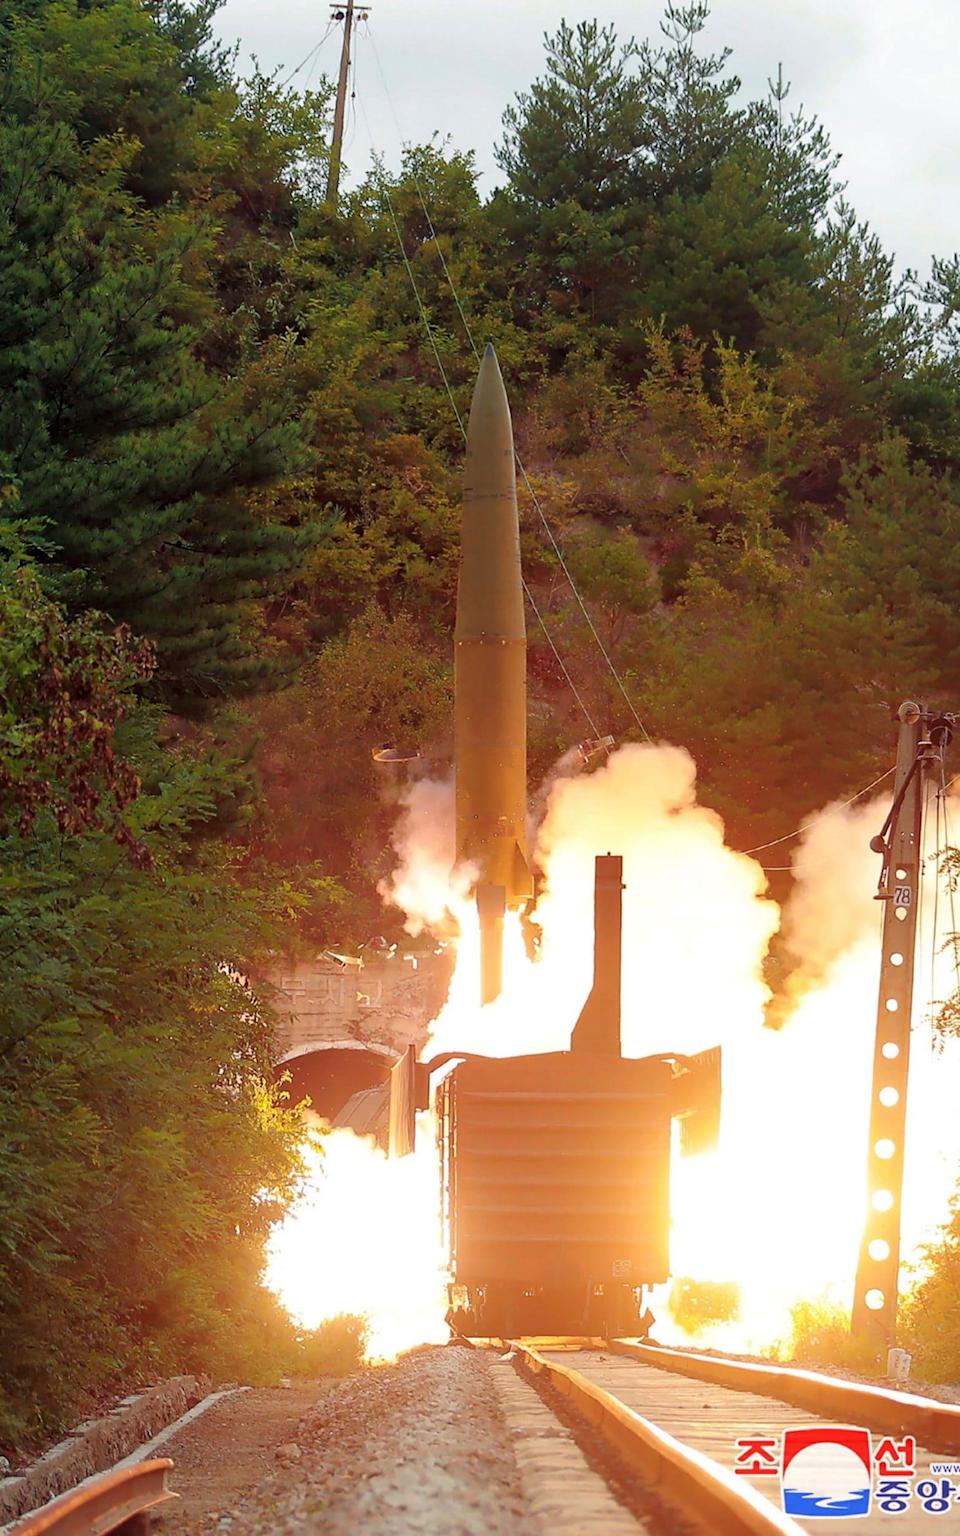 Pictures from the state agency show the missile being launched from the train. - KCNA